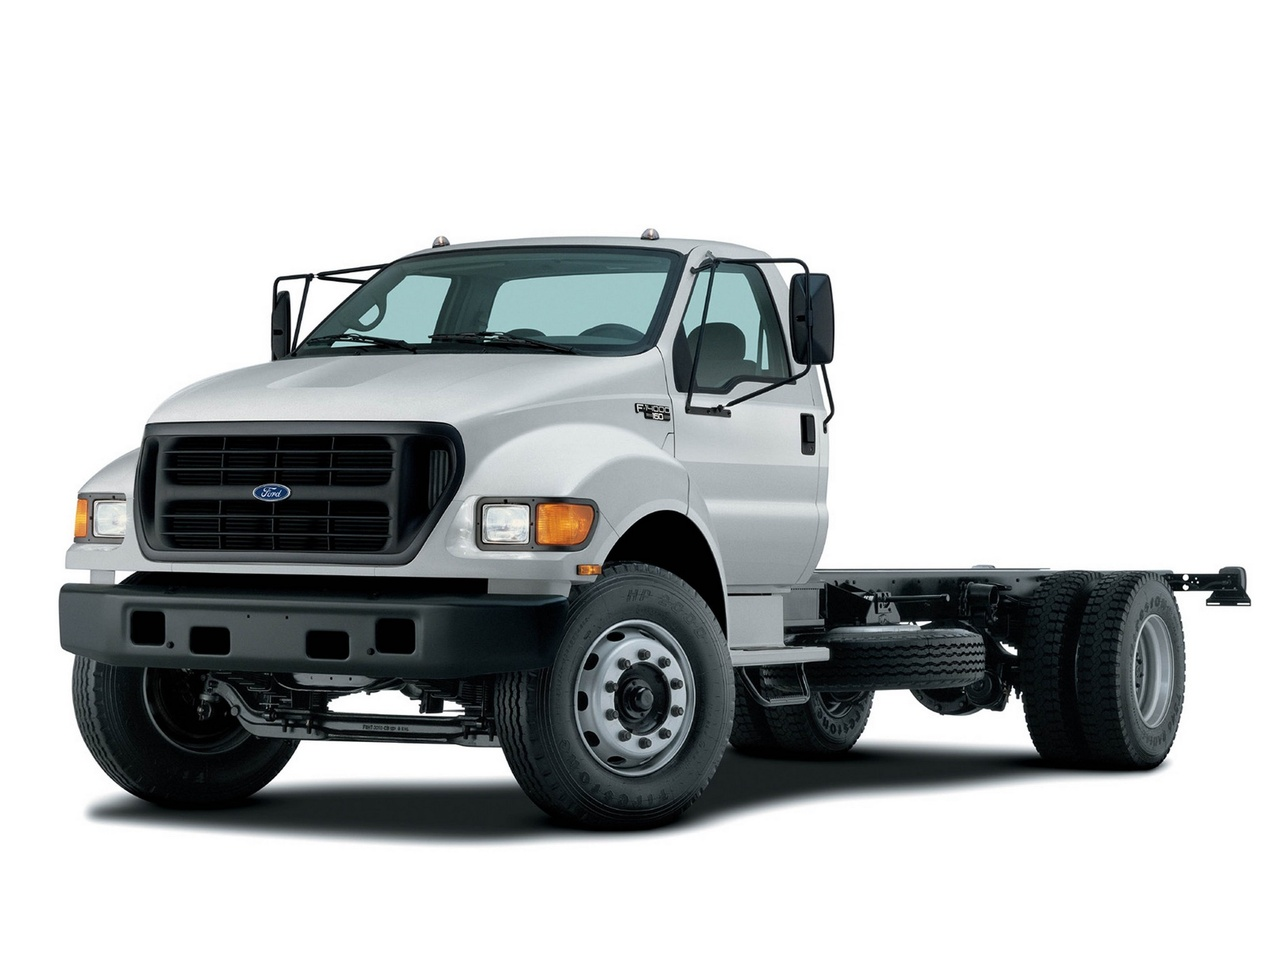 Ford f-14000 photo - 10